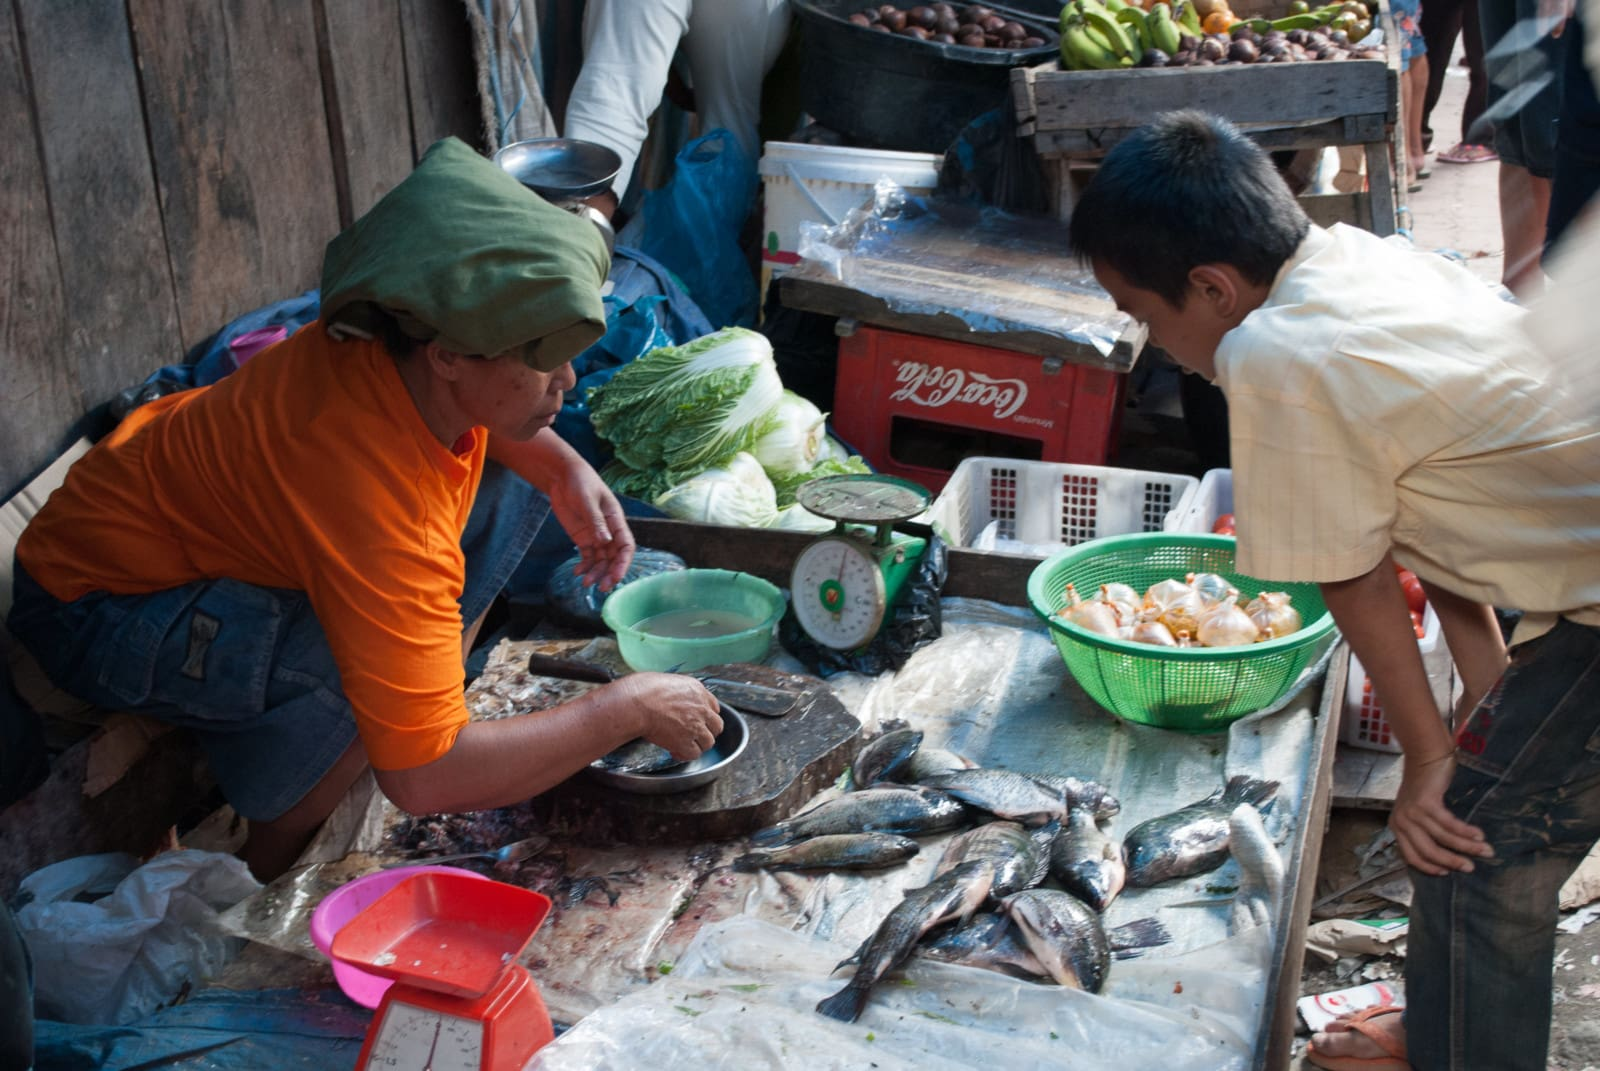 fish-seller-market-sumatra-london-freelance-photographer-richard-isaac-3200